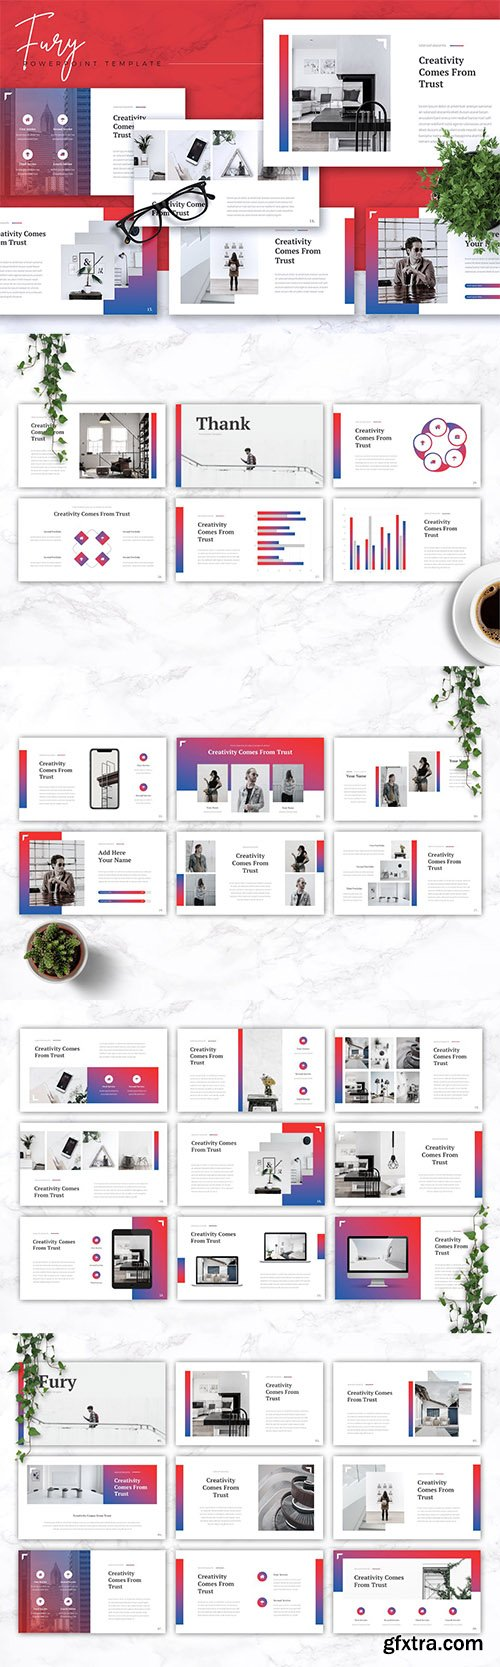 FURY - Creative Powerpoint, Keynote and Google Slides Templates